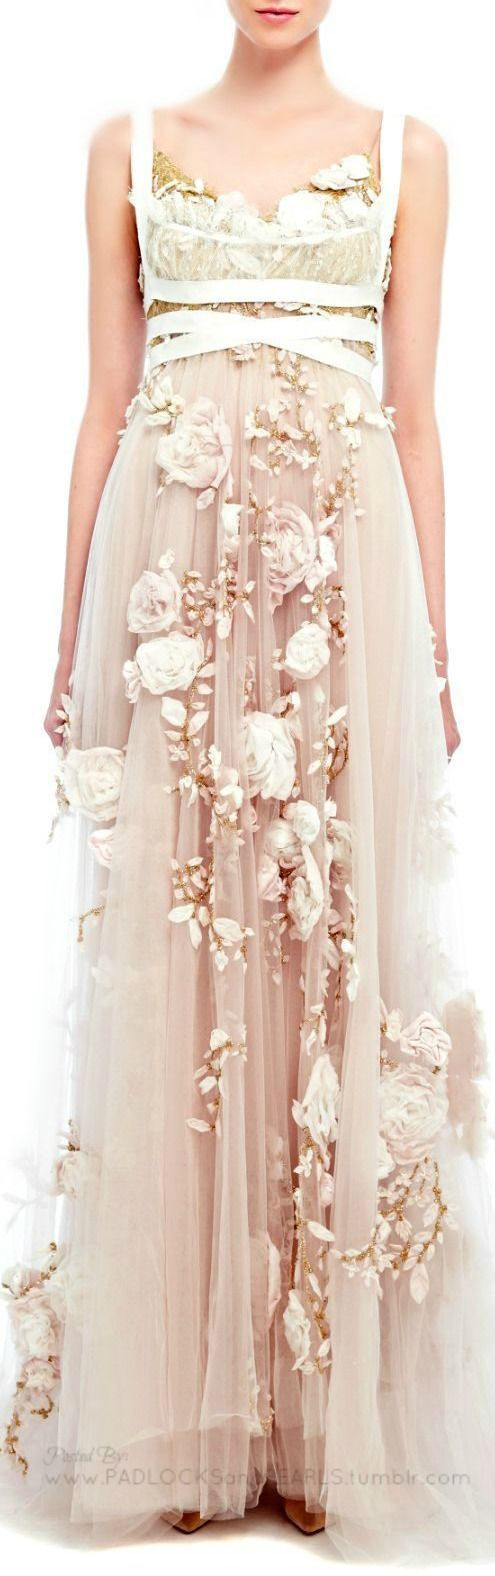 Marchesa - Spring/Summer 2014